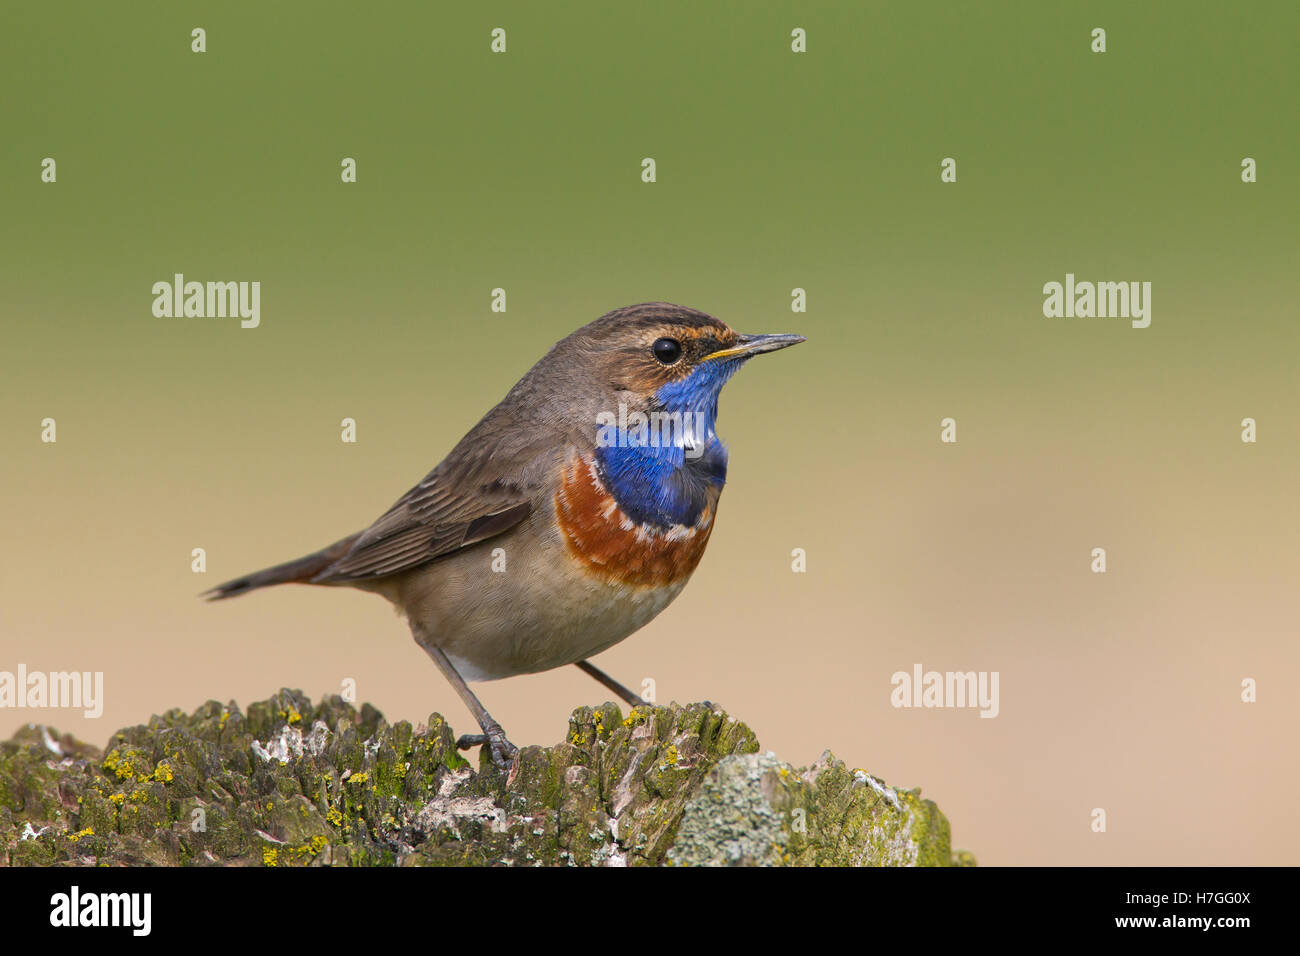 White-spotted bluethroat (Luscinia svecica cyanecula) male perched on fence post in spring - Stock Image